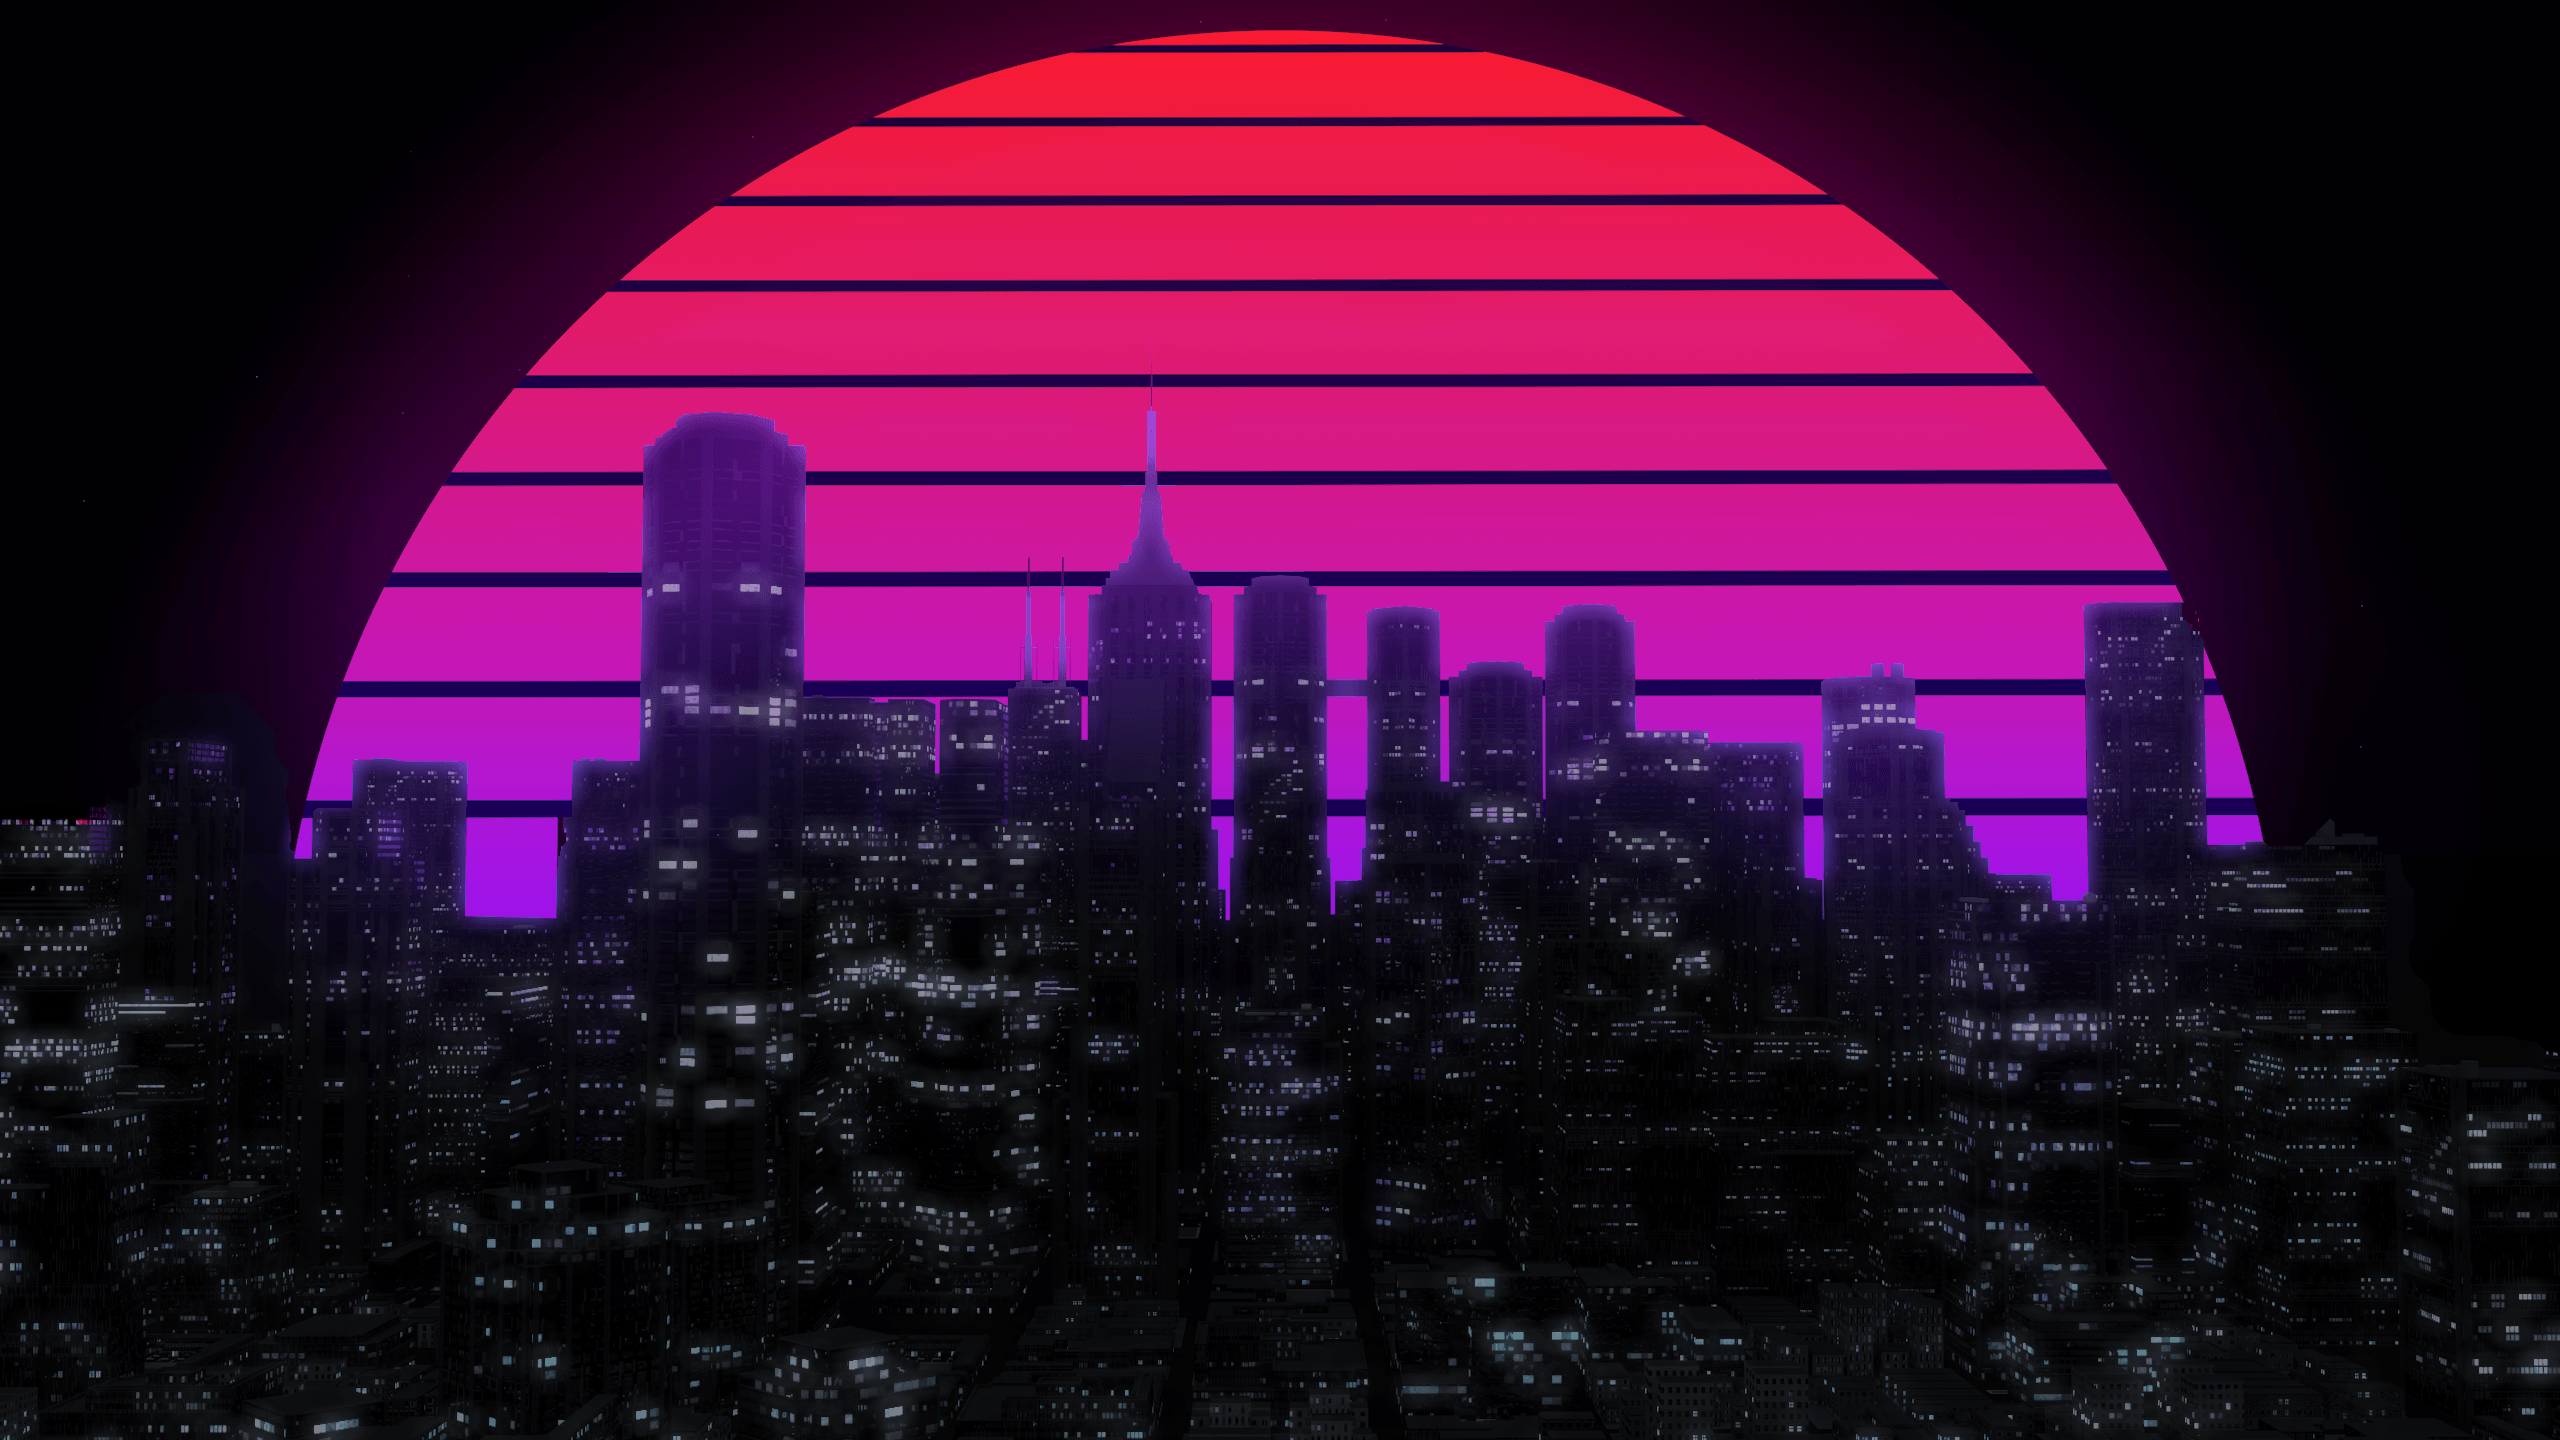 Aesthetics City Wallpapers Wallpaper Cave